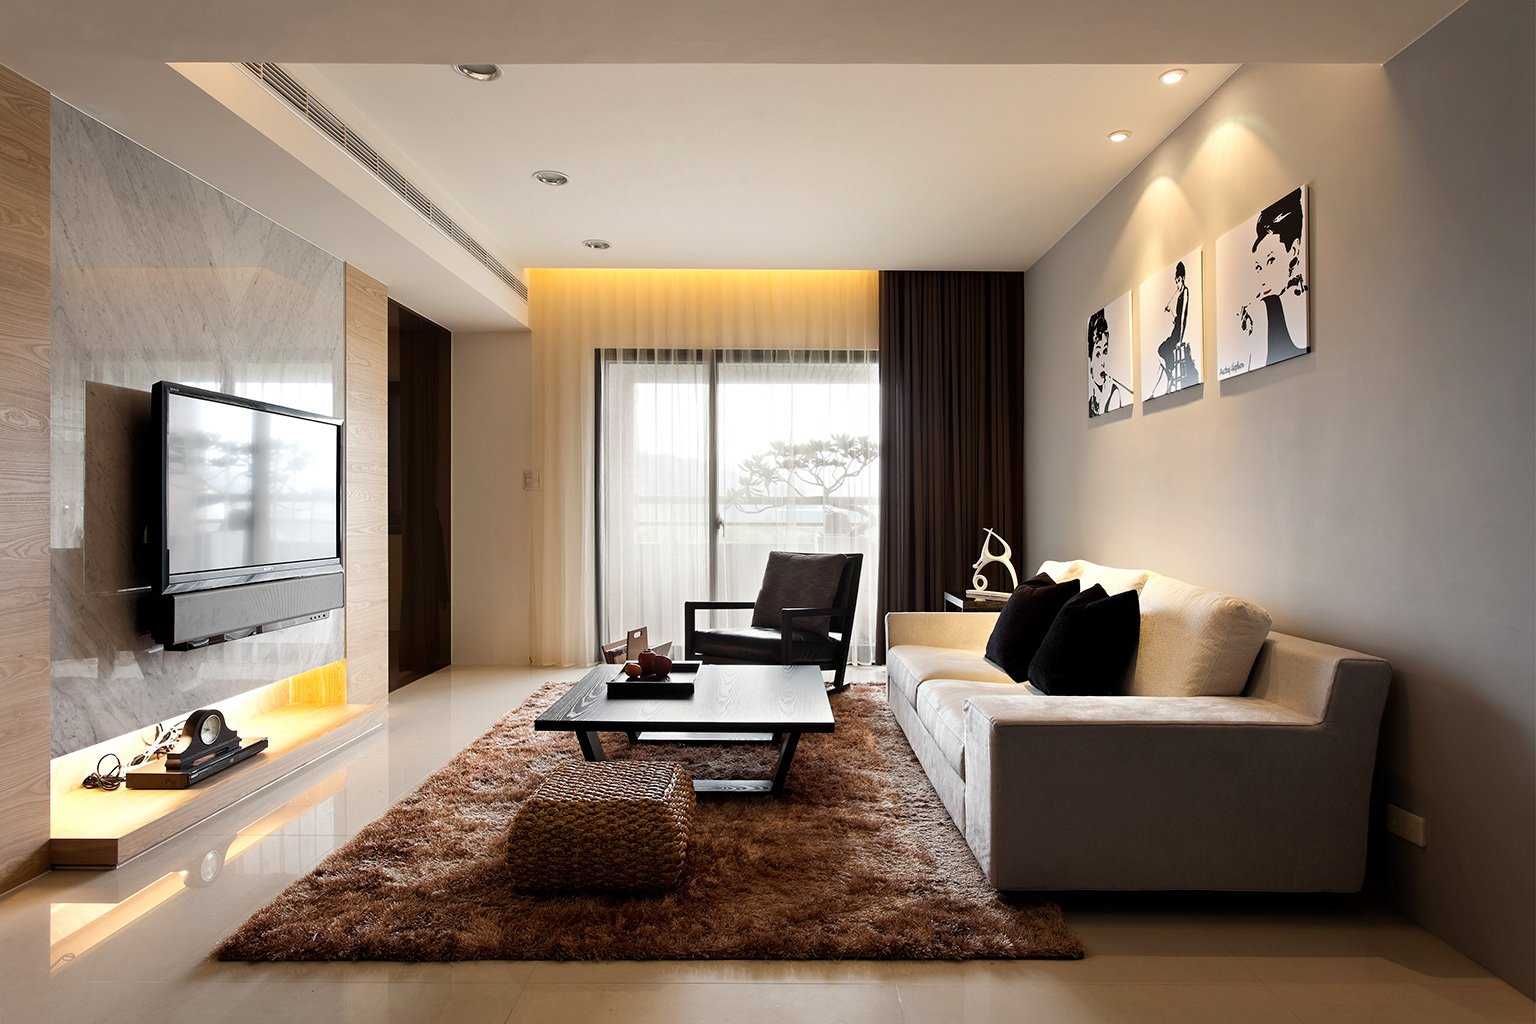 Minimalist Interior Design Modern Minimalist Decor With A Homey Flow